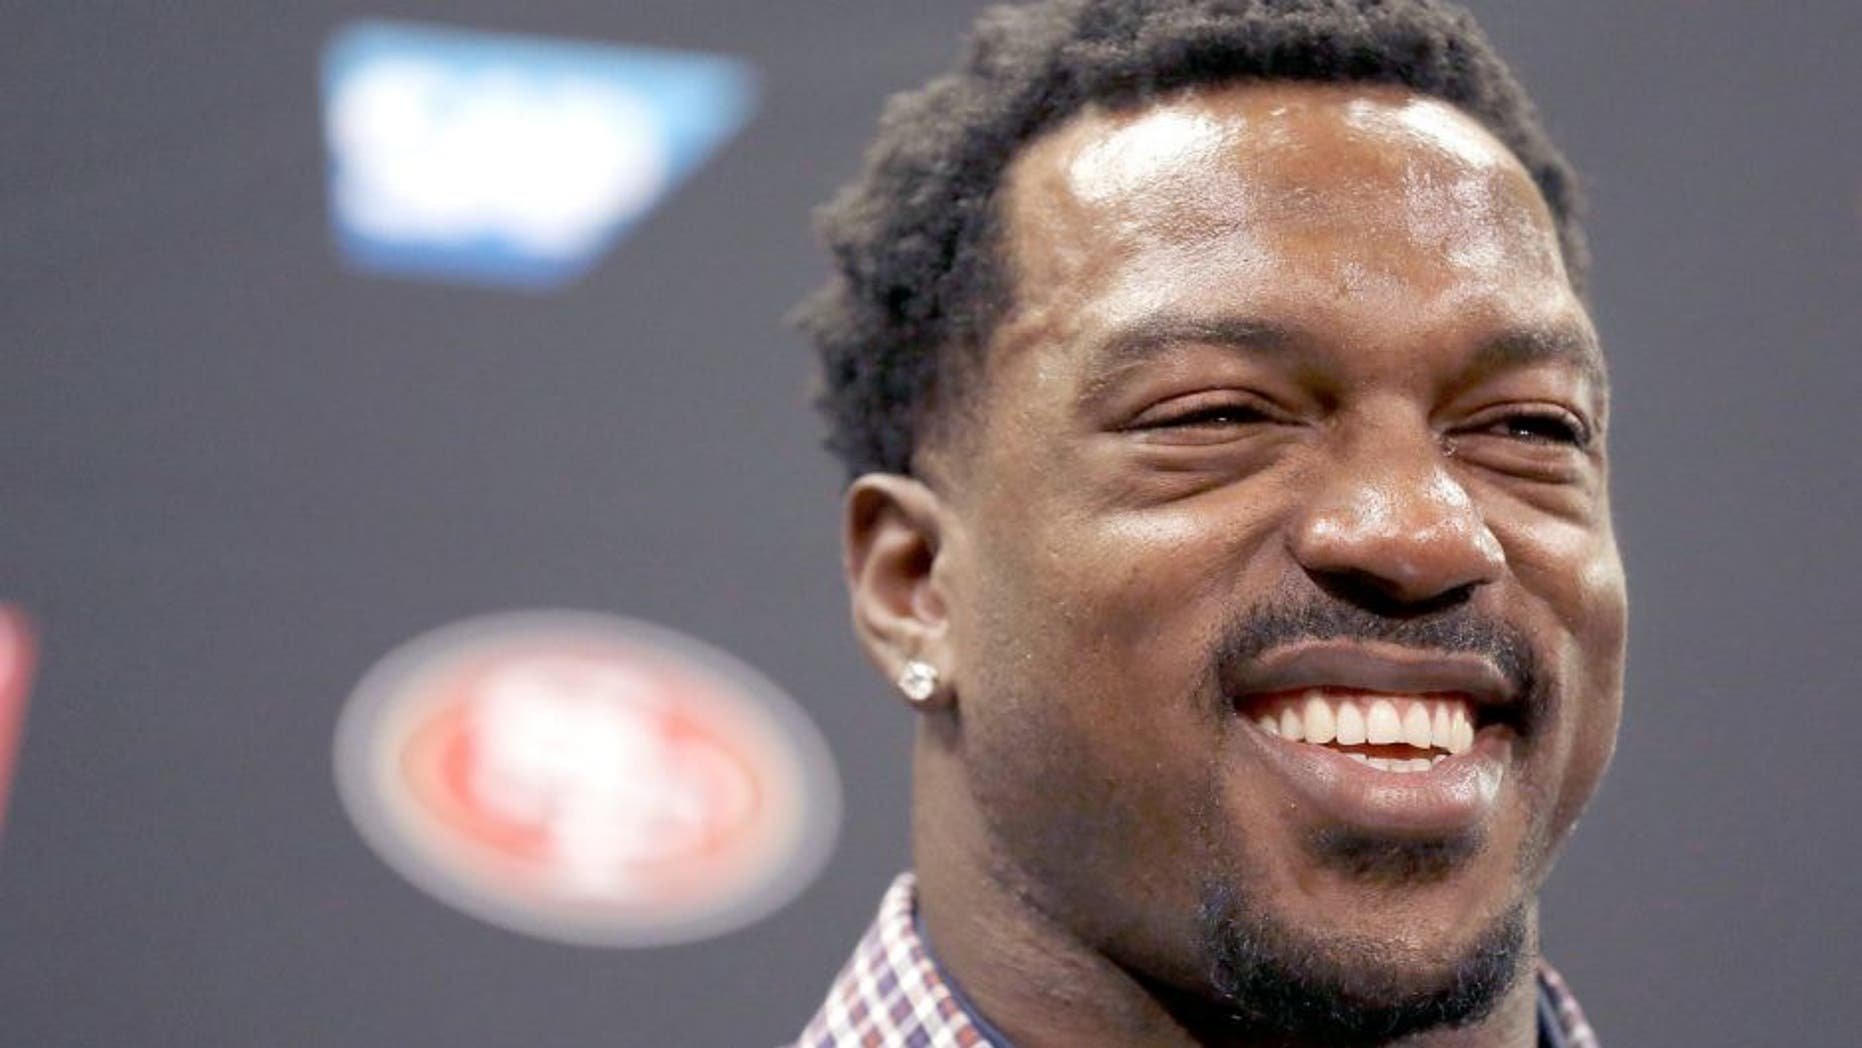 San Francisco 49ers linebacker Patrick Willis speaks at a news conference at the 49ers' NFL football facility in Santa Clara, Tuesday, March 10, 2015. Willis, a seven-time Pro Bowler, will retire after his 2014 season was cut short by a toe injury that required surgery, the 49ers announced, Tuesday. (AP Photo/Jeff Chiu)